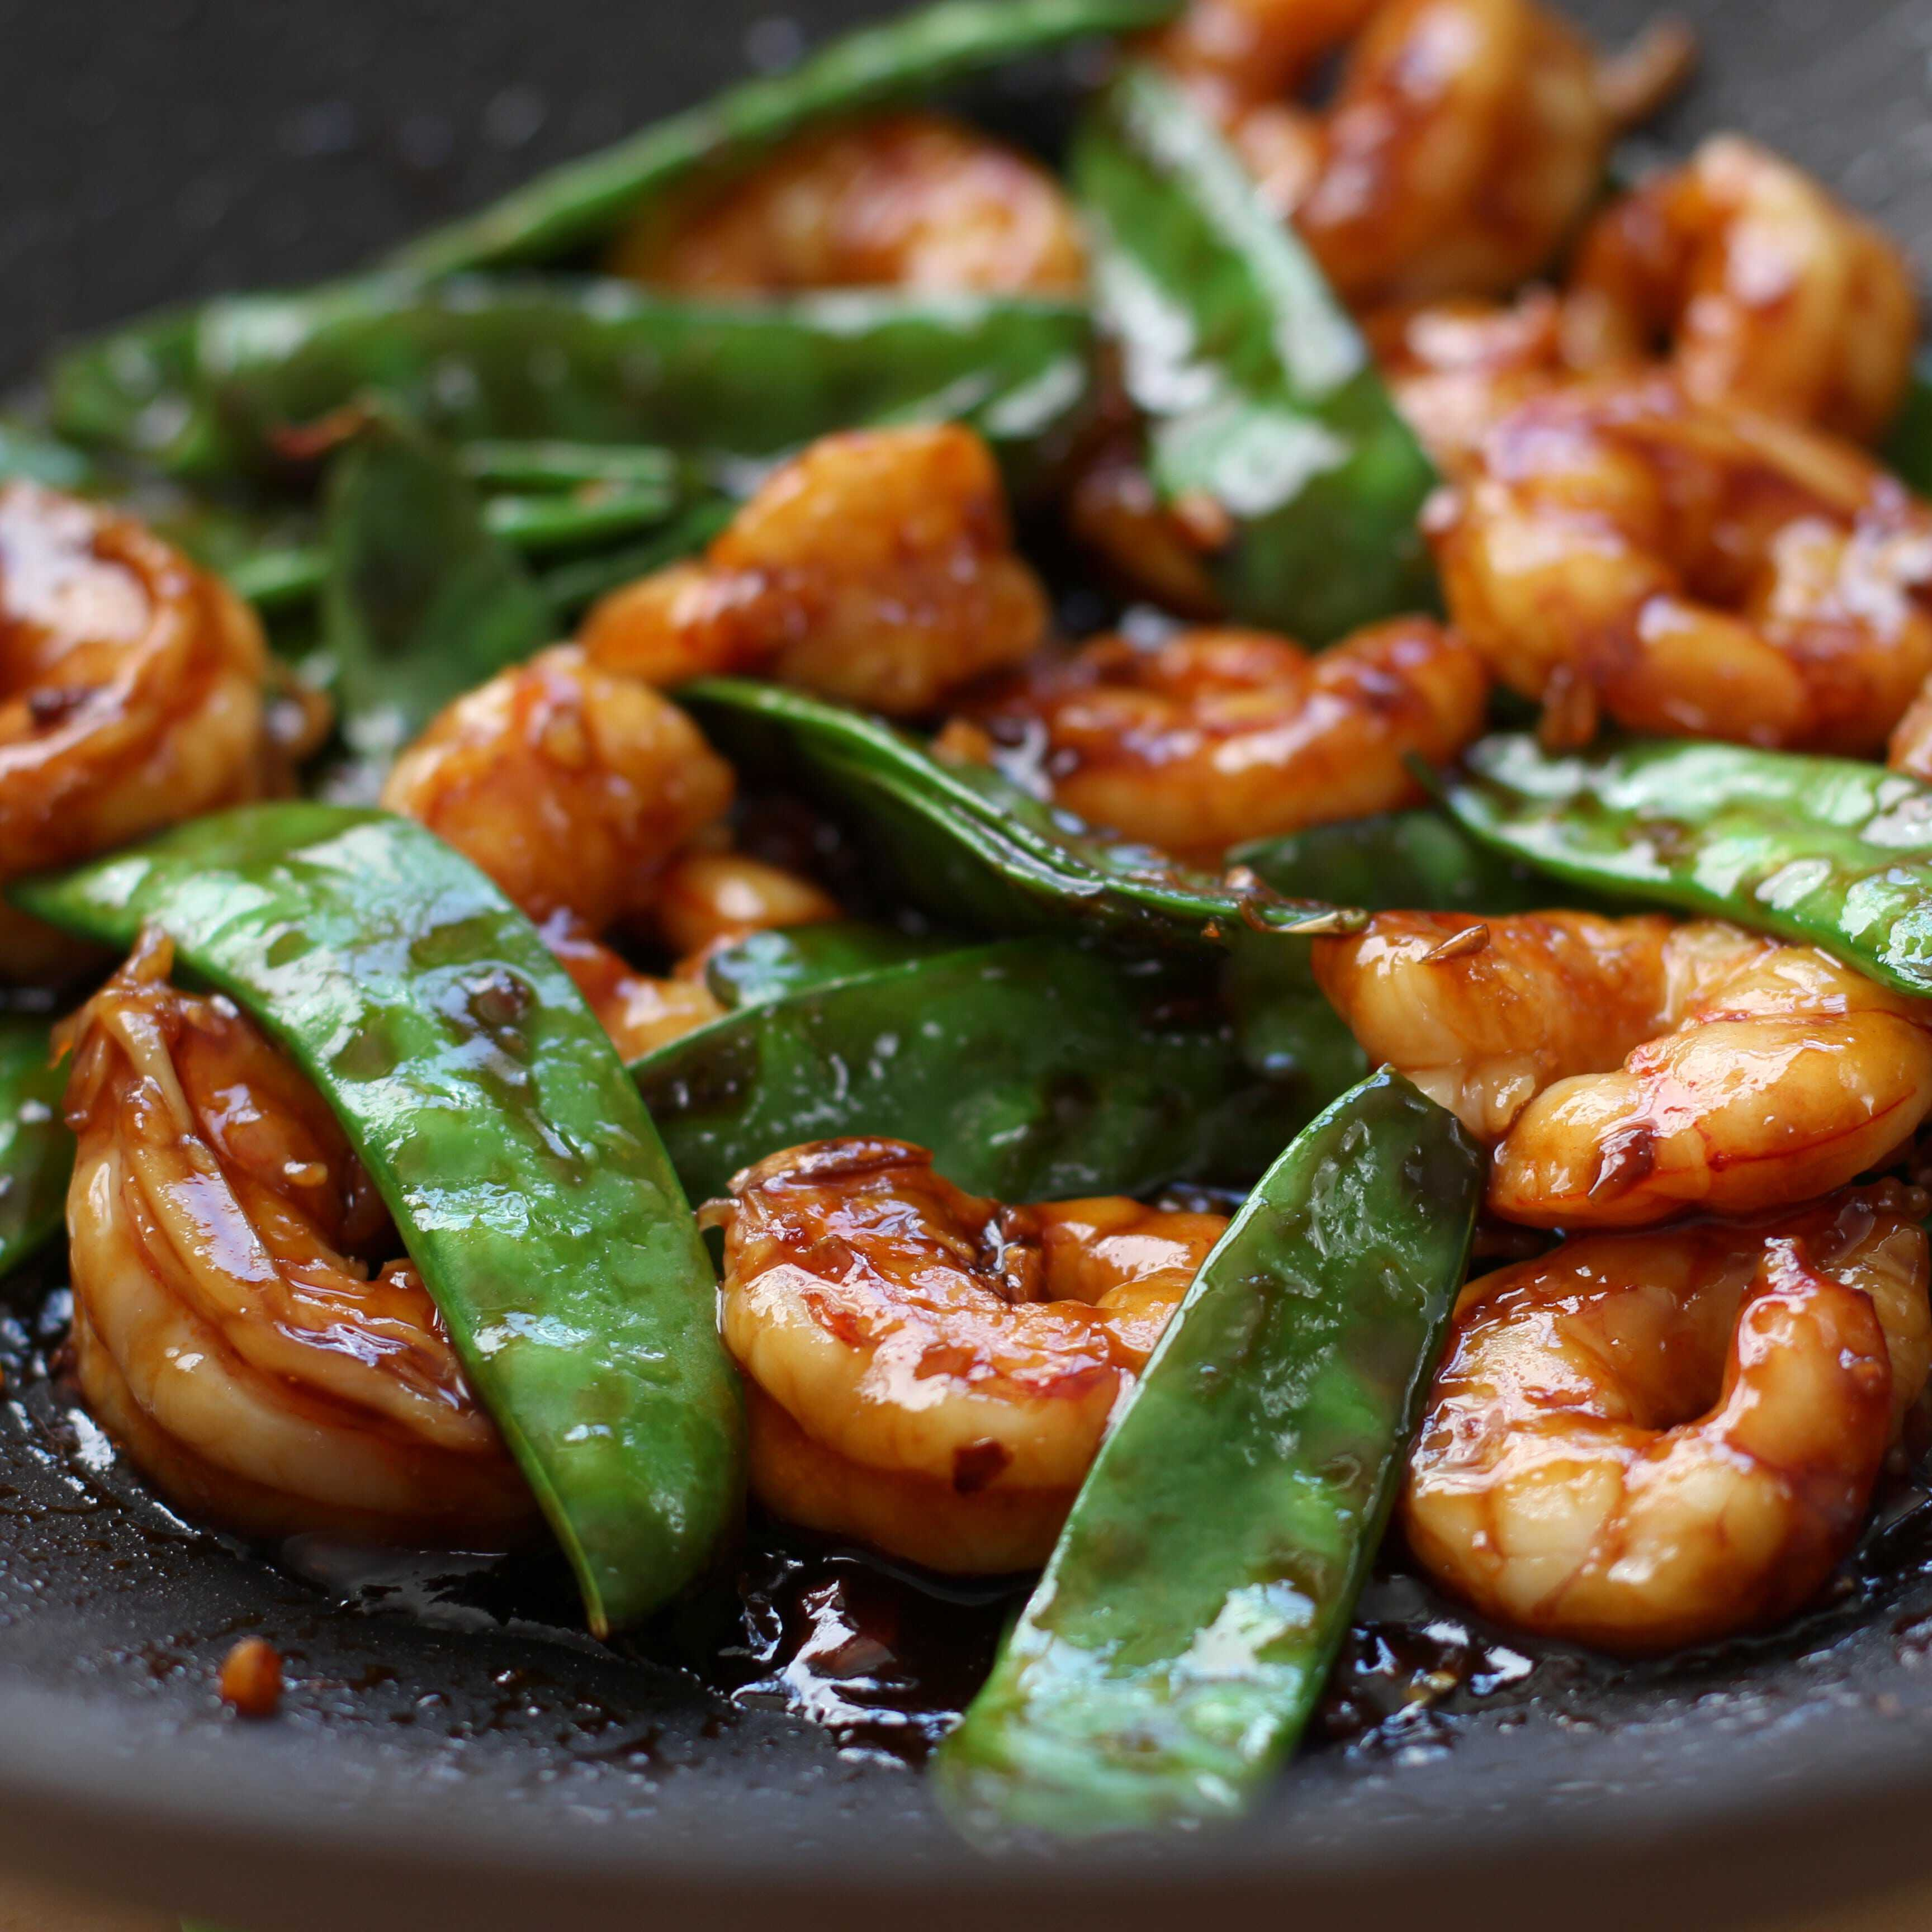 Communication on this topic: Shrimp and Snow Pea Stir-Fry, shrimp-and-snow-pea-stir-fry/